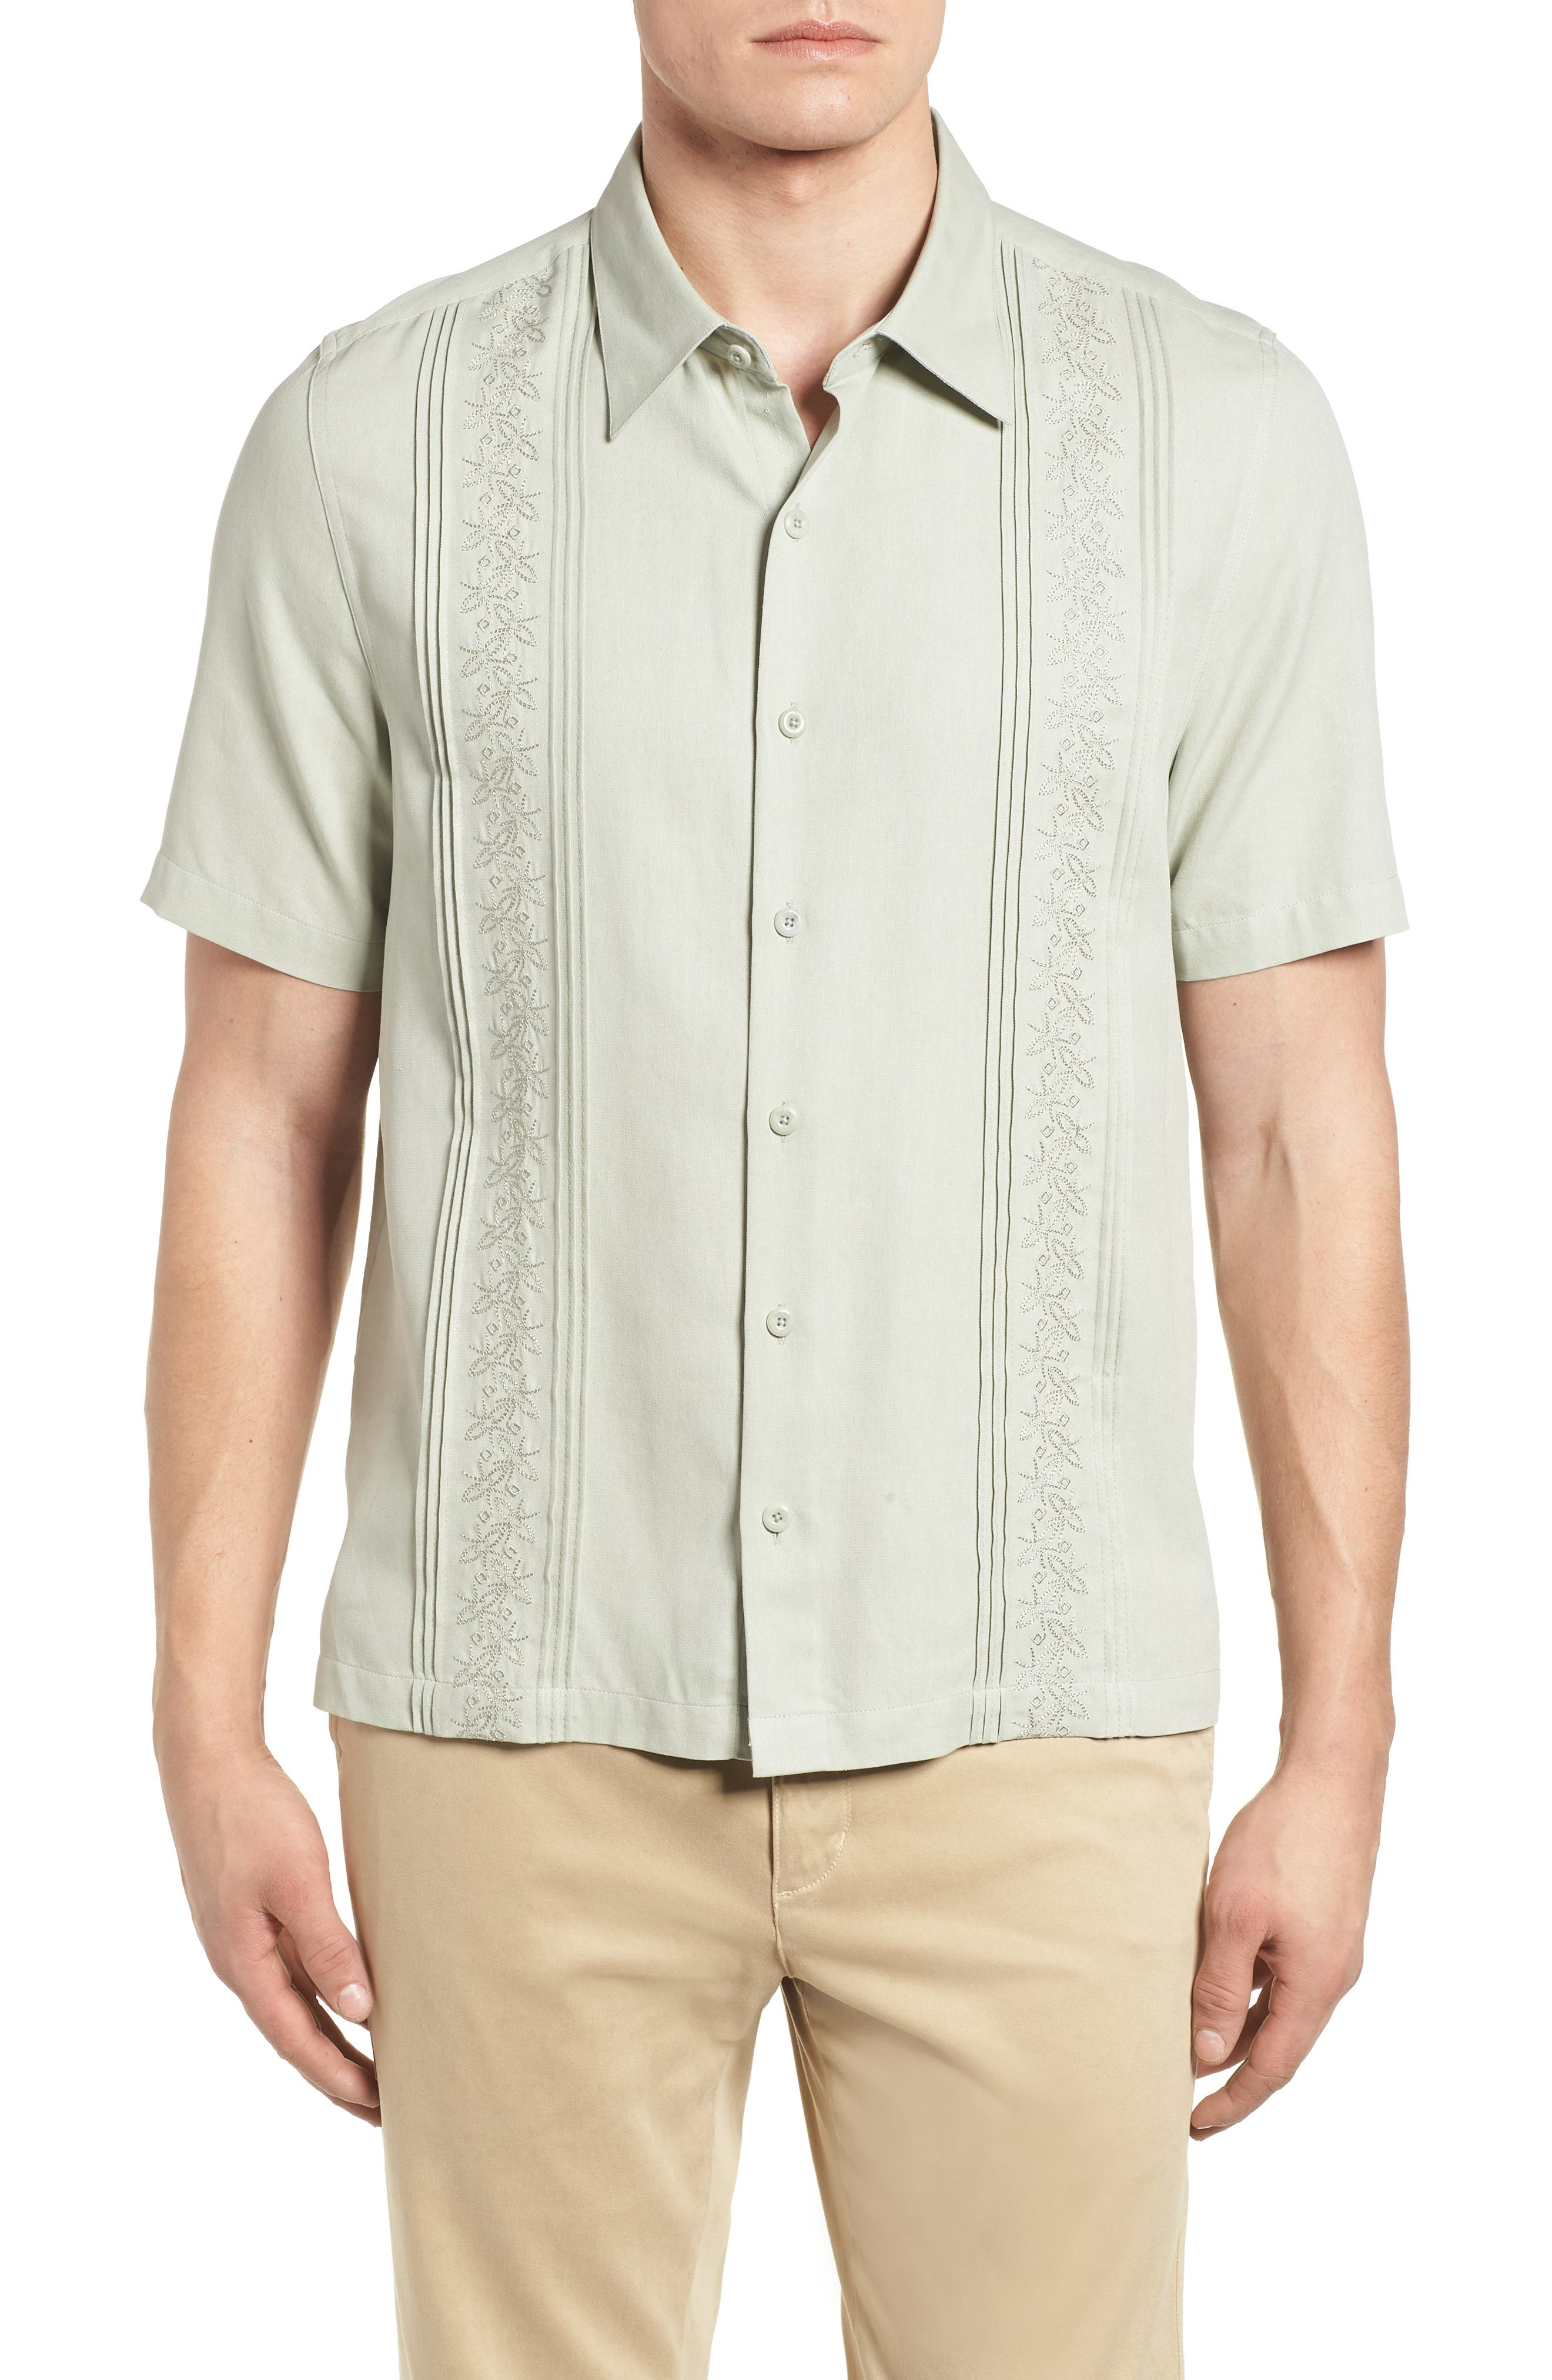 La Fleur Camp Shirt,                         Main,                         color, 020